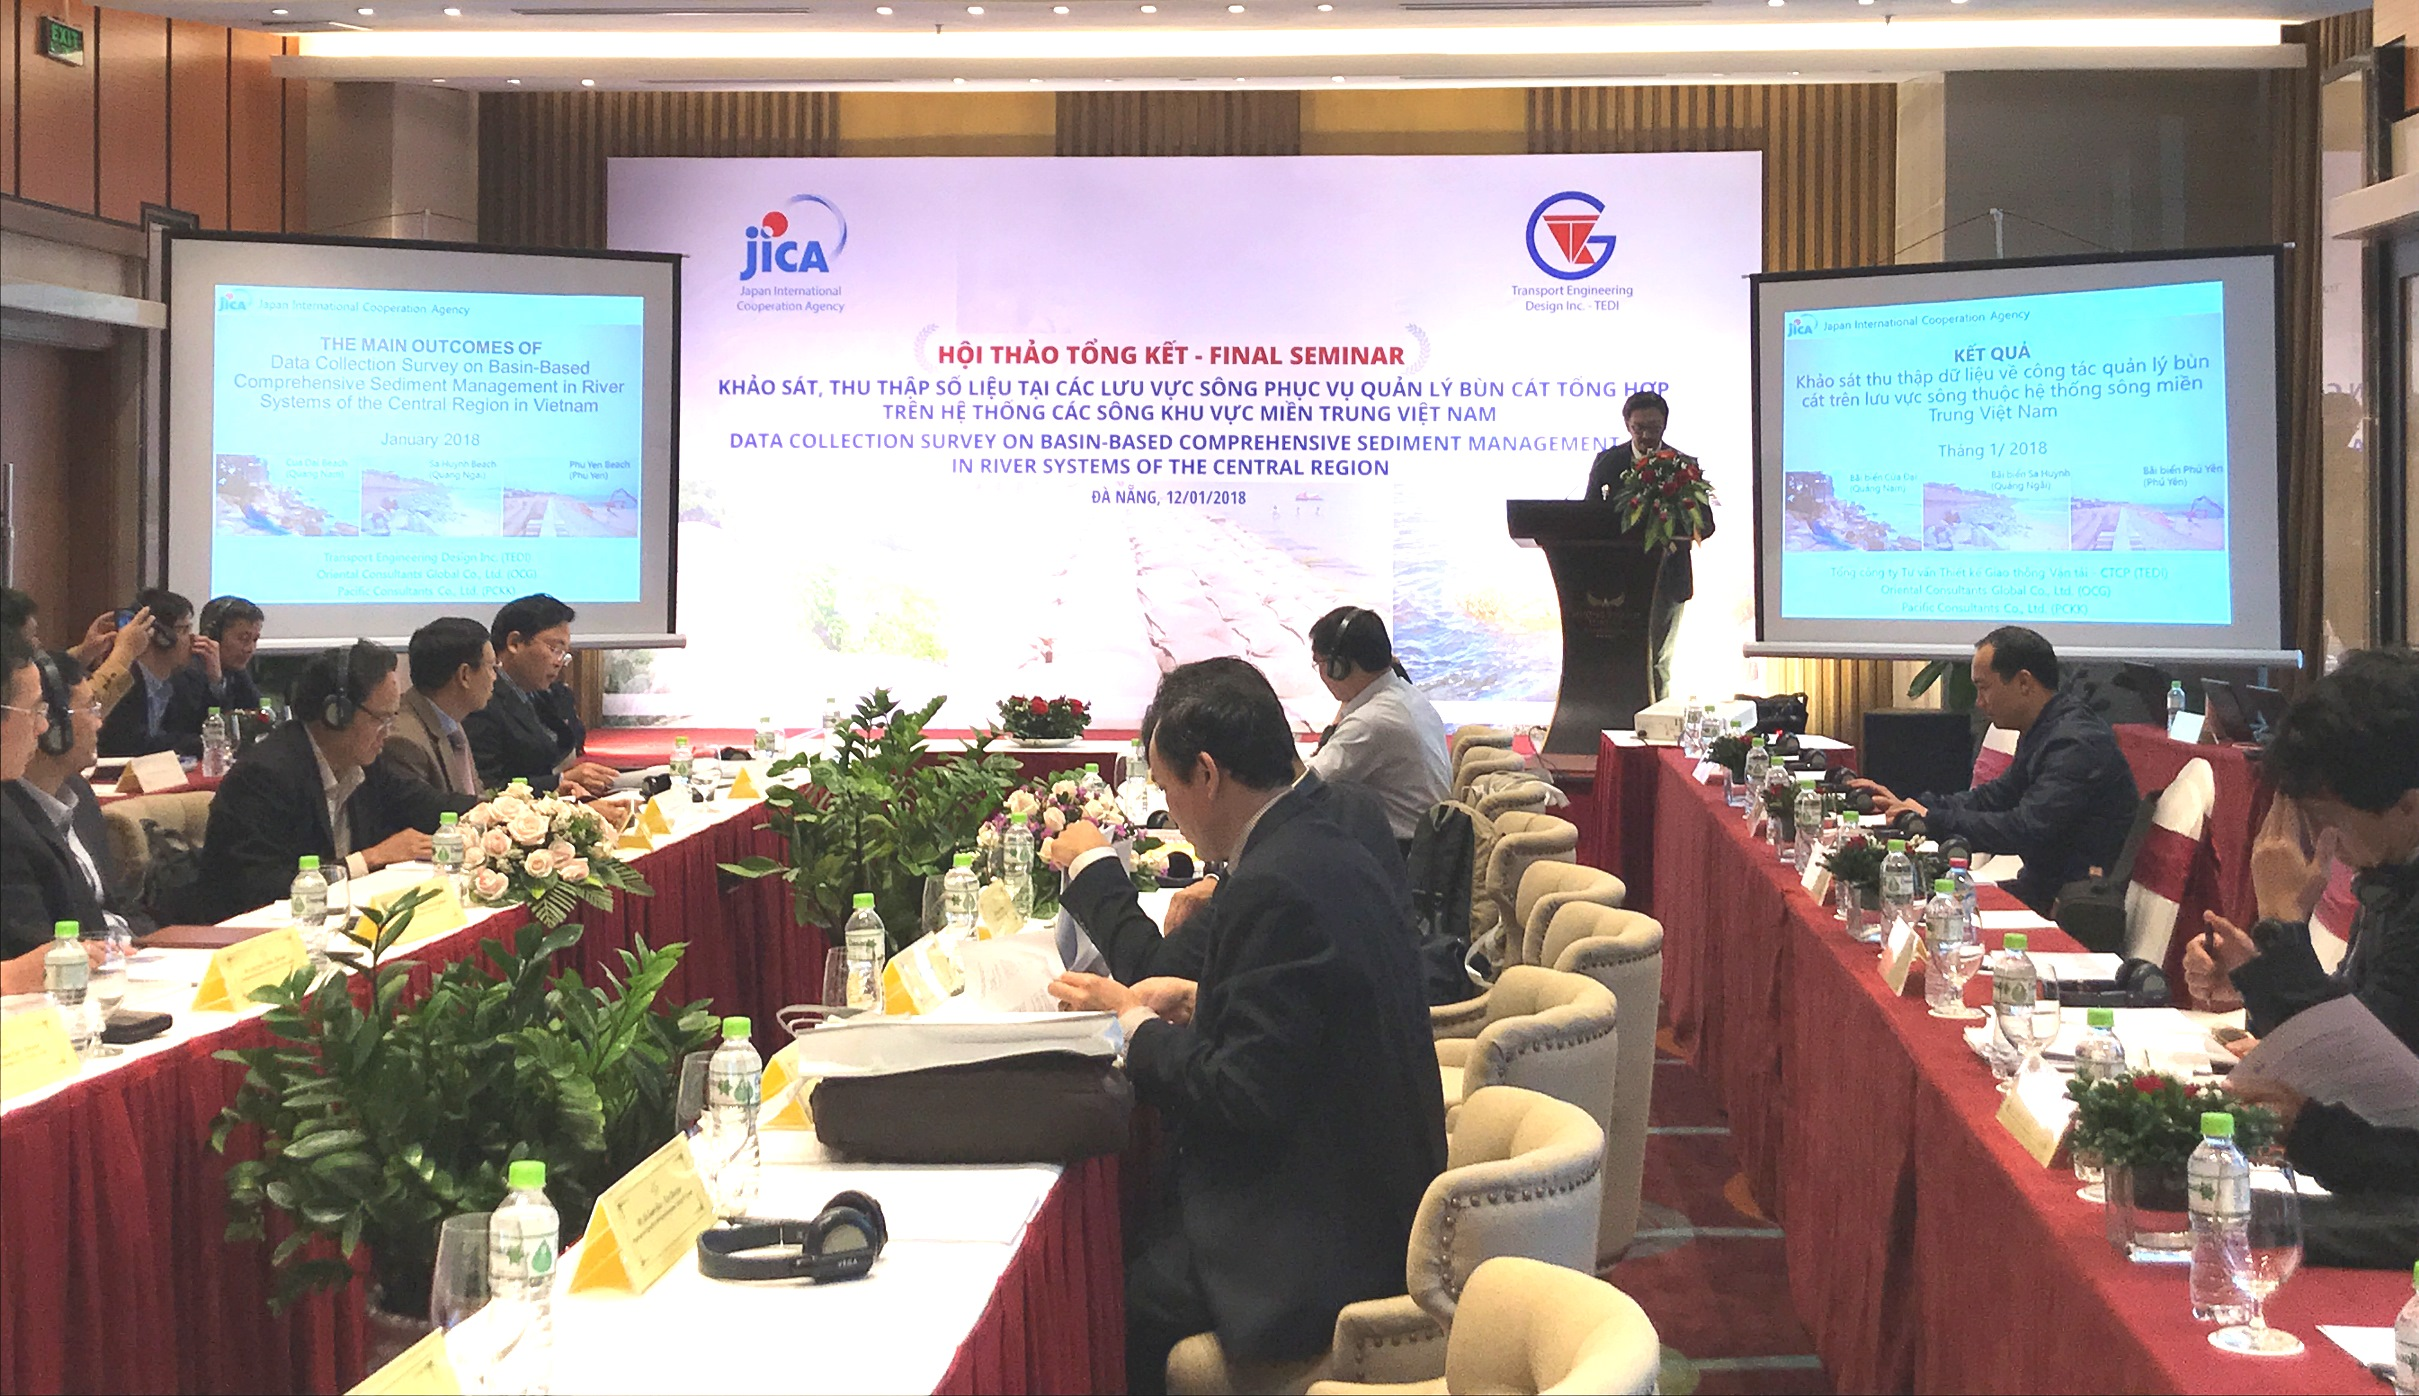 JICA helps Vietnam on river sediment management